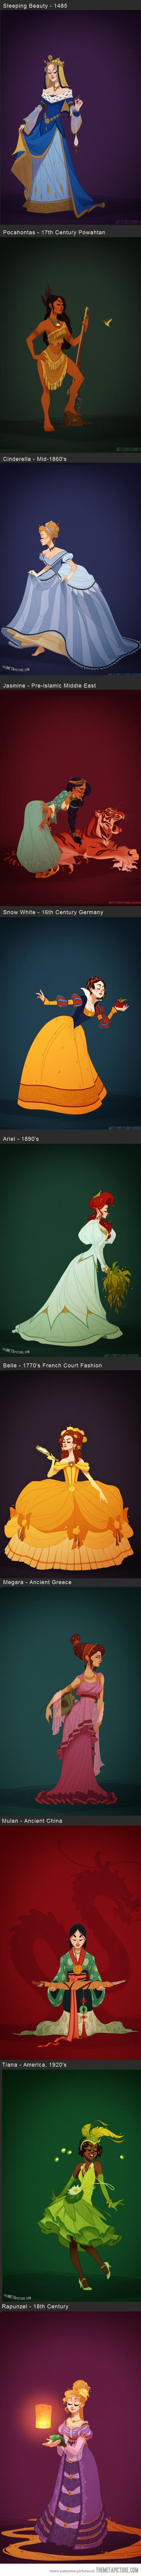 Disney Princesses in accurate period costumes. I really like this especially Ariel.